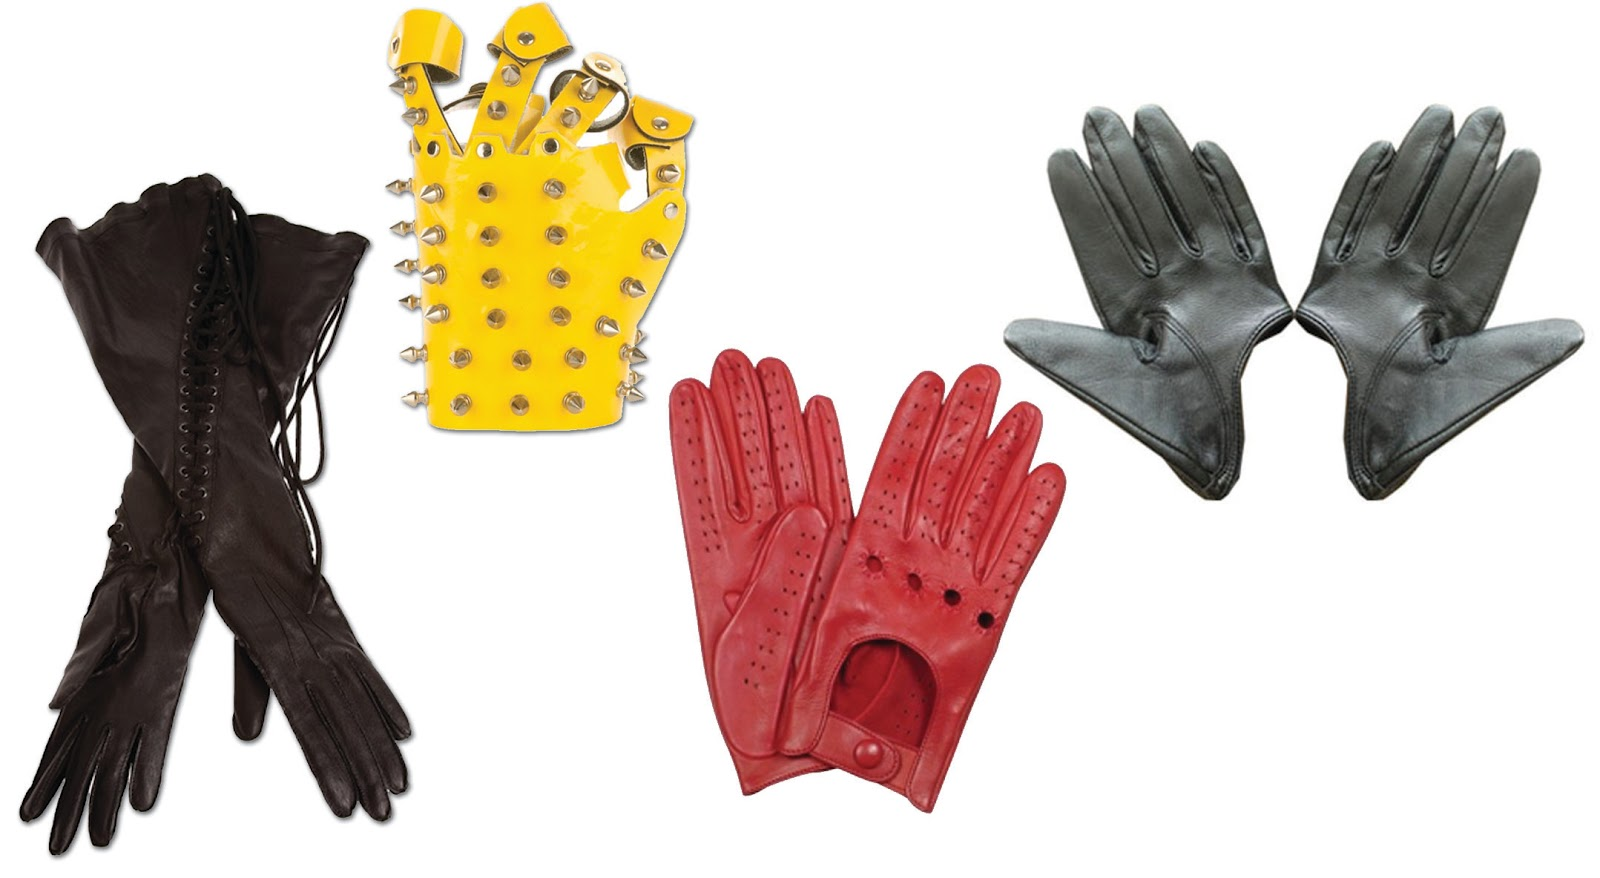 Black leather gloves asos -  Lace Up Glove Hayatochiri Yellow Spiked Glove Asos Lace Gloves Forzieri Women S Red Perforated Italian Leather Gloves Romwe Half Hand Black Gloves